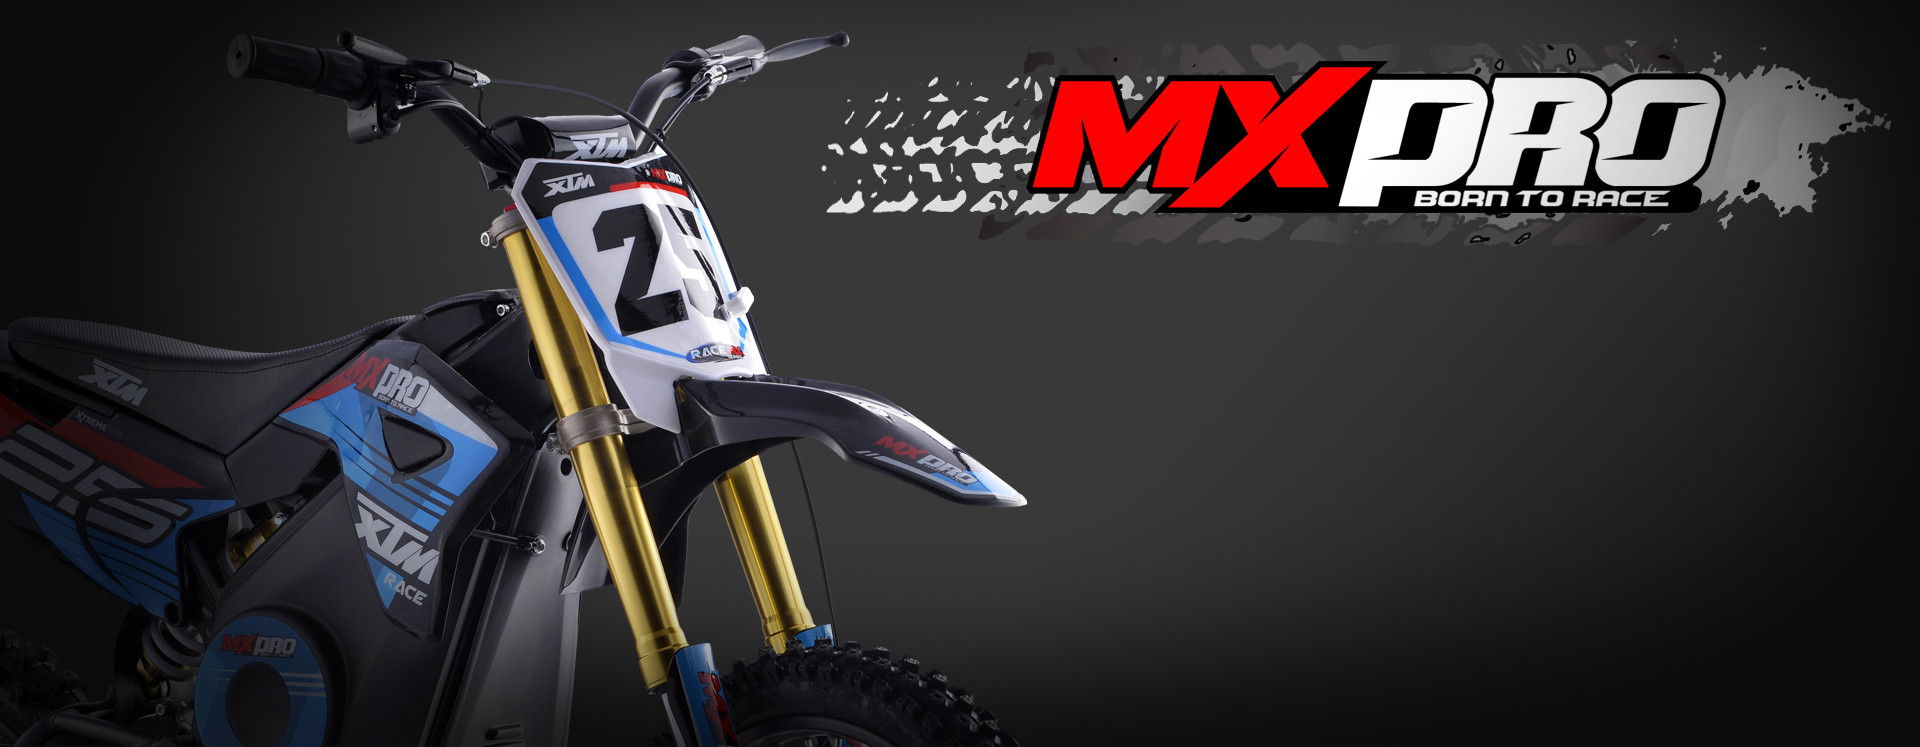 XTM MX-PRO 36V 1000W DIRT BIKE BLUE